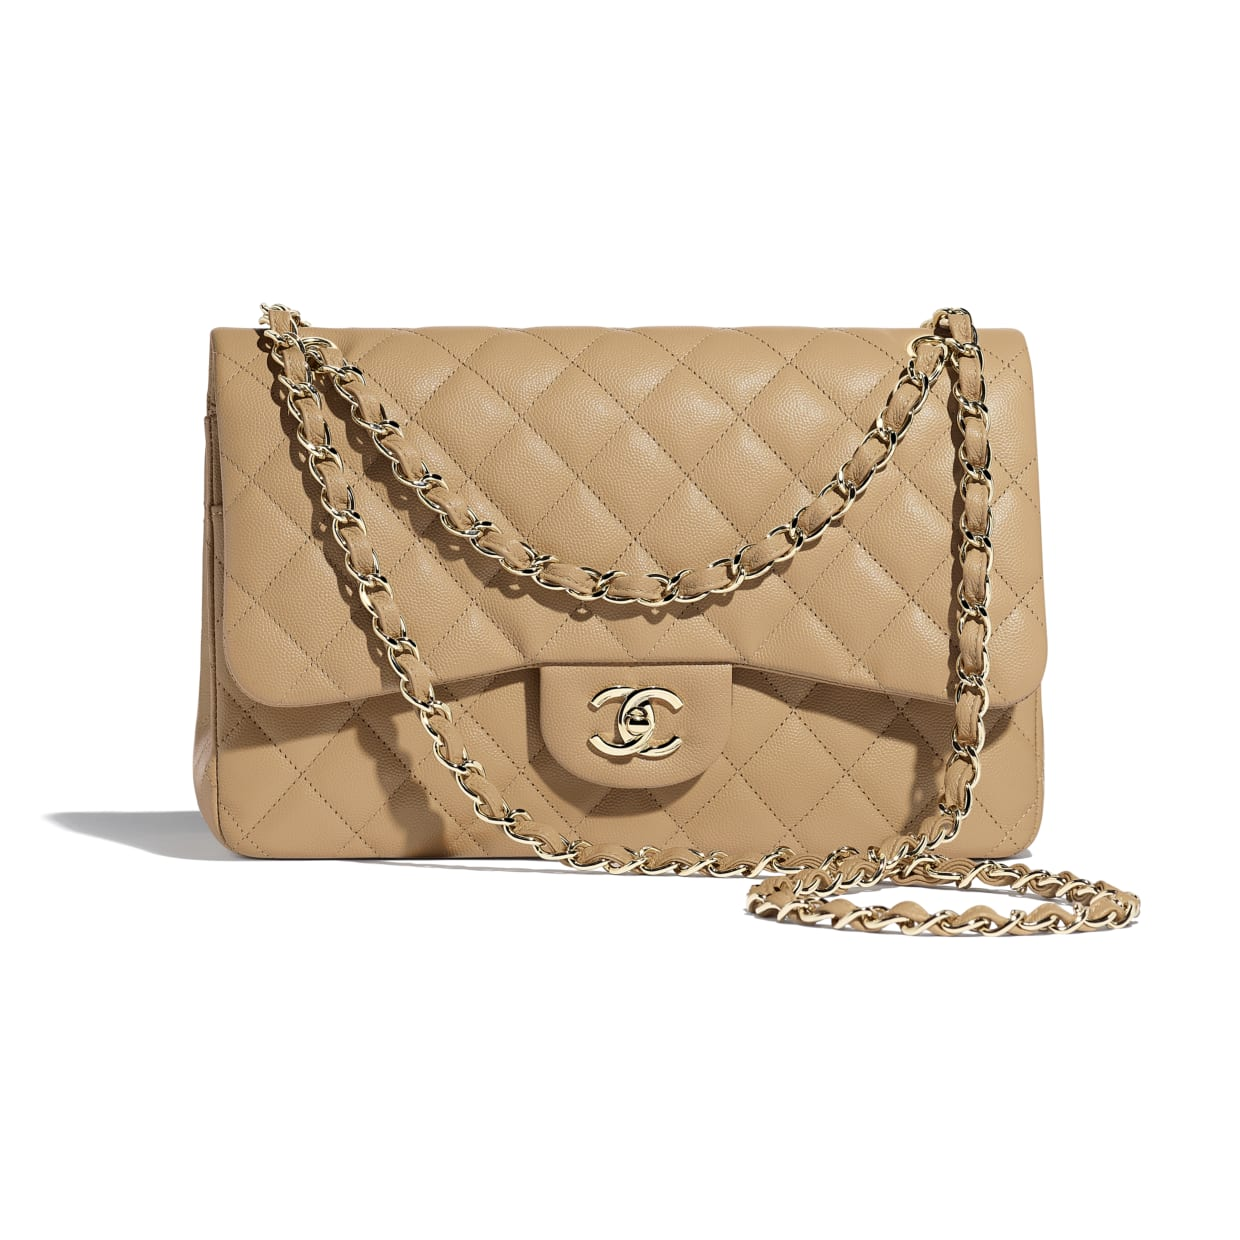 Chanel Classic Bag Price Increases